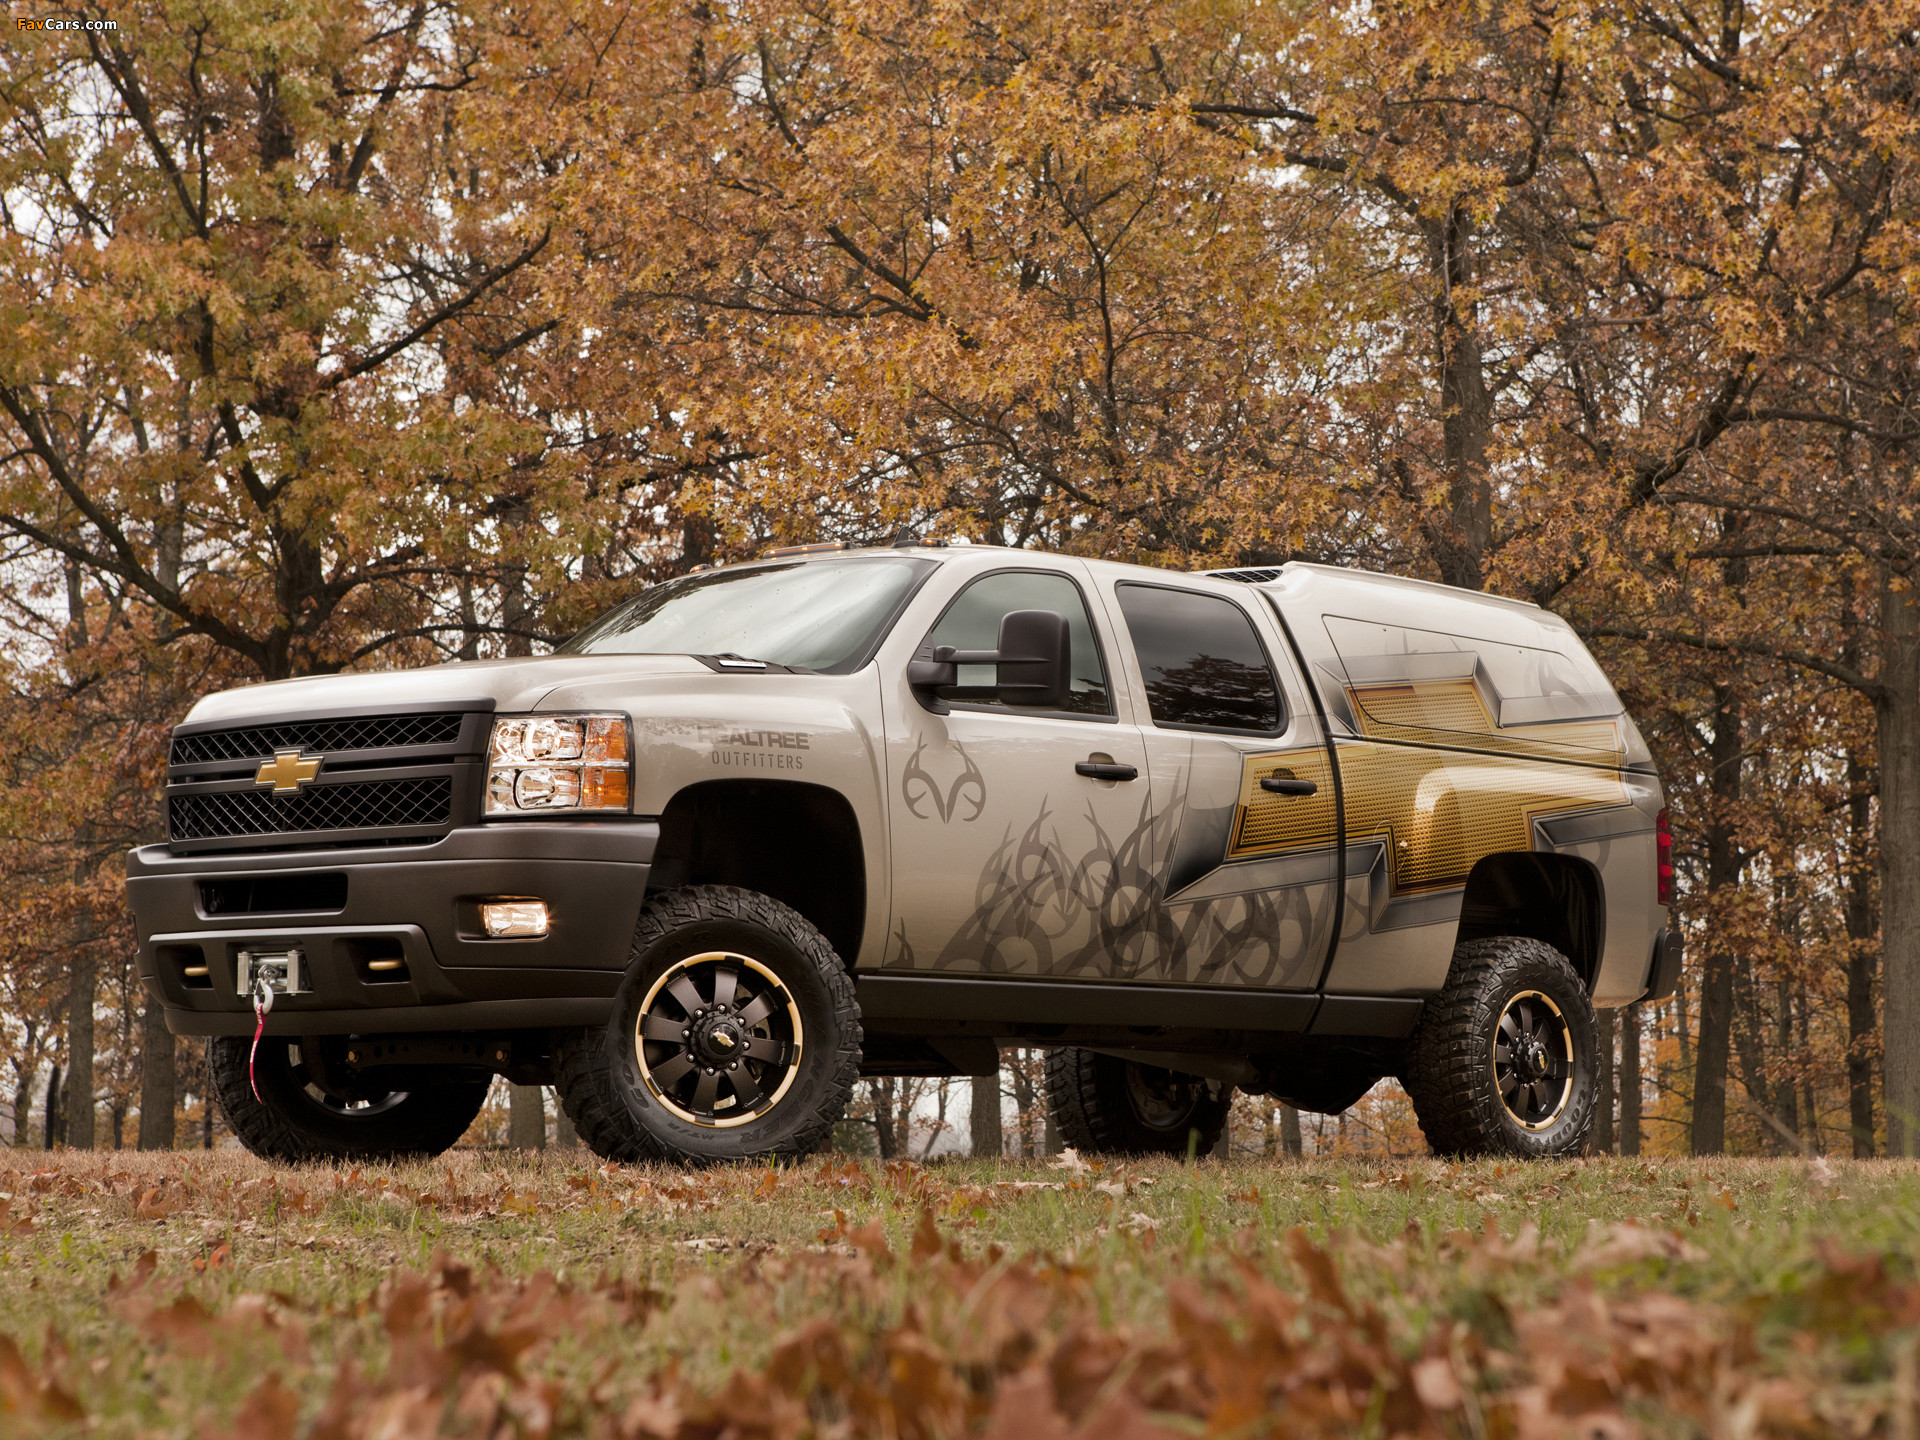 Res: 1920x1440, Chevrolet Silverado 2500 HD Realtree Concept 2011 wallpapers (1920 x 1440)